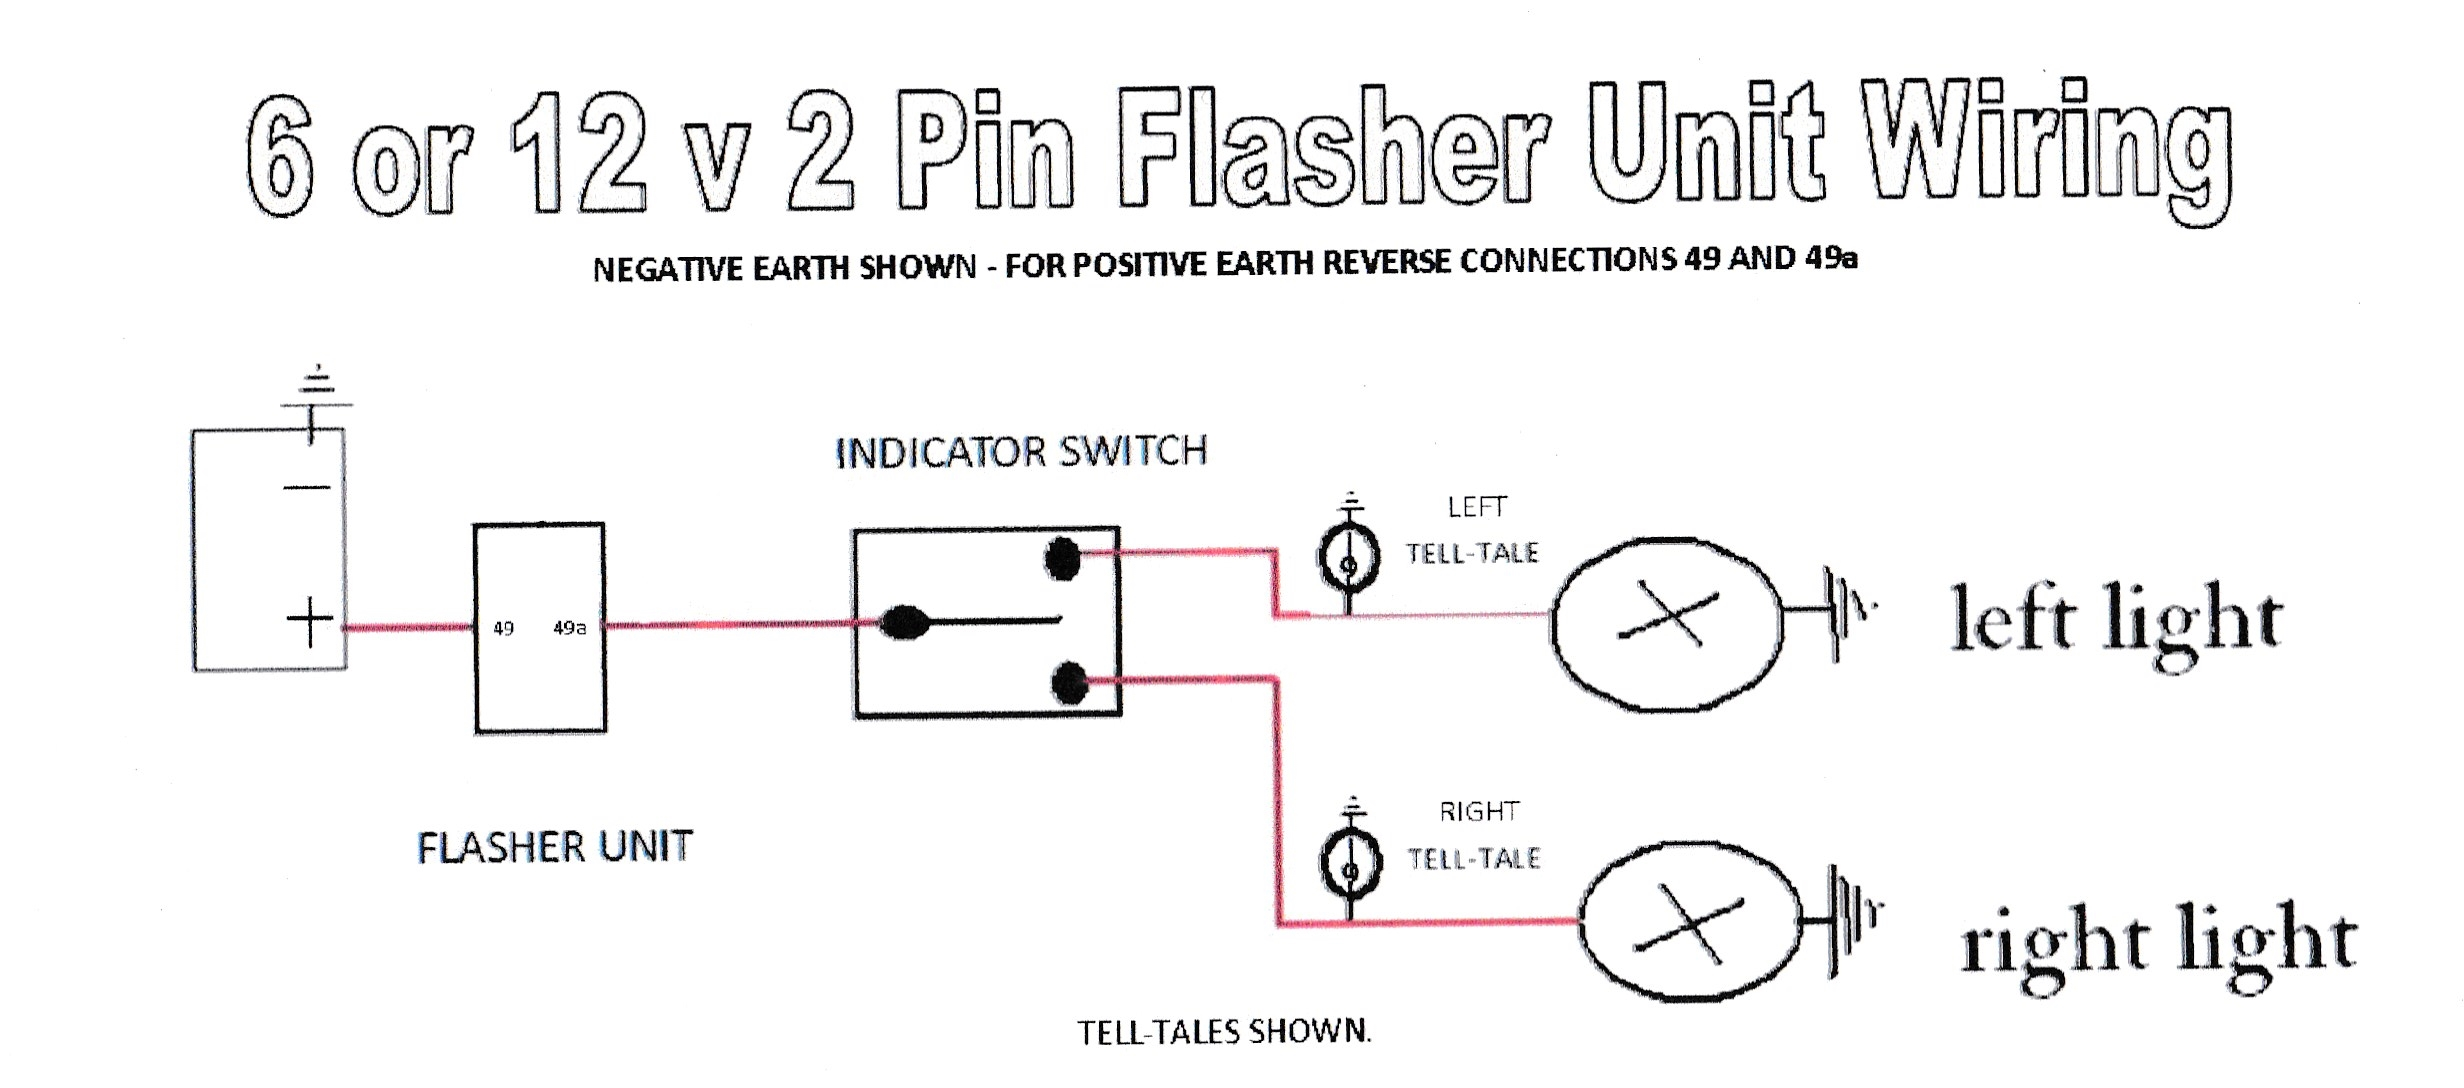 IMG_20150323_0001_NEW wiring diagrams to assist you with connecting up flasher unit wiring diagram at alyssarenee.co